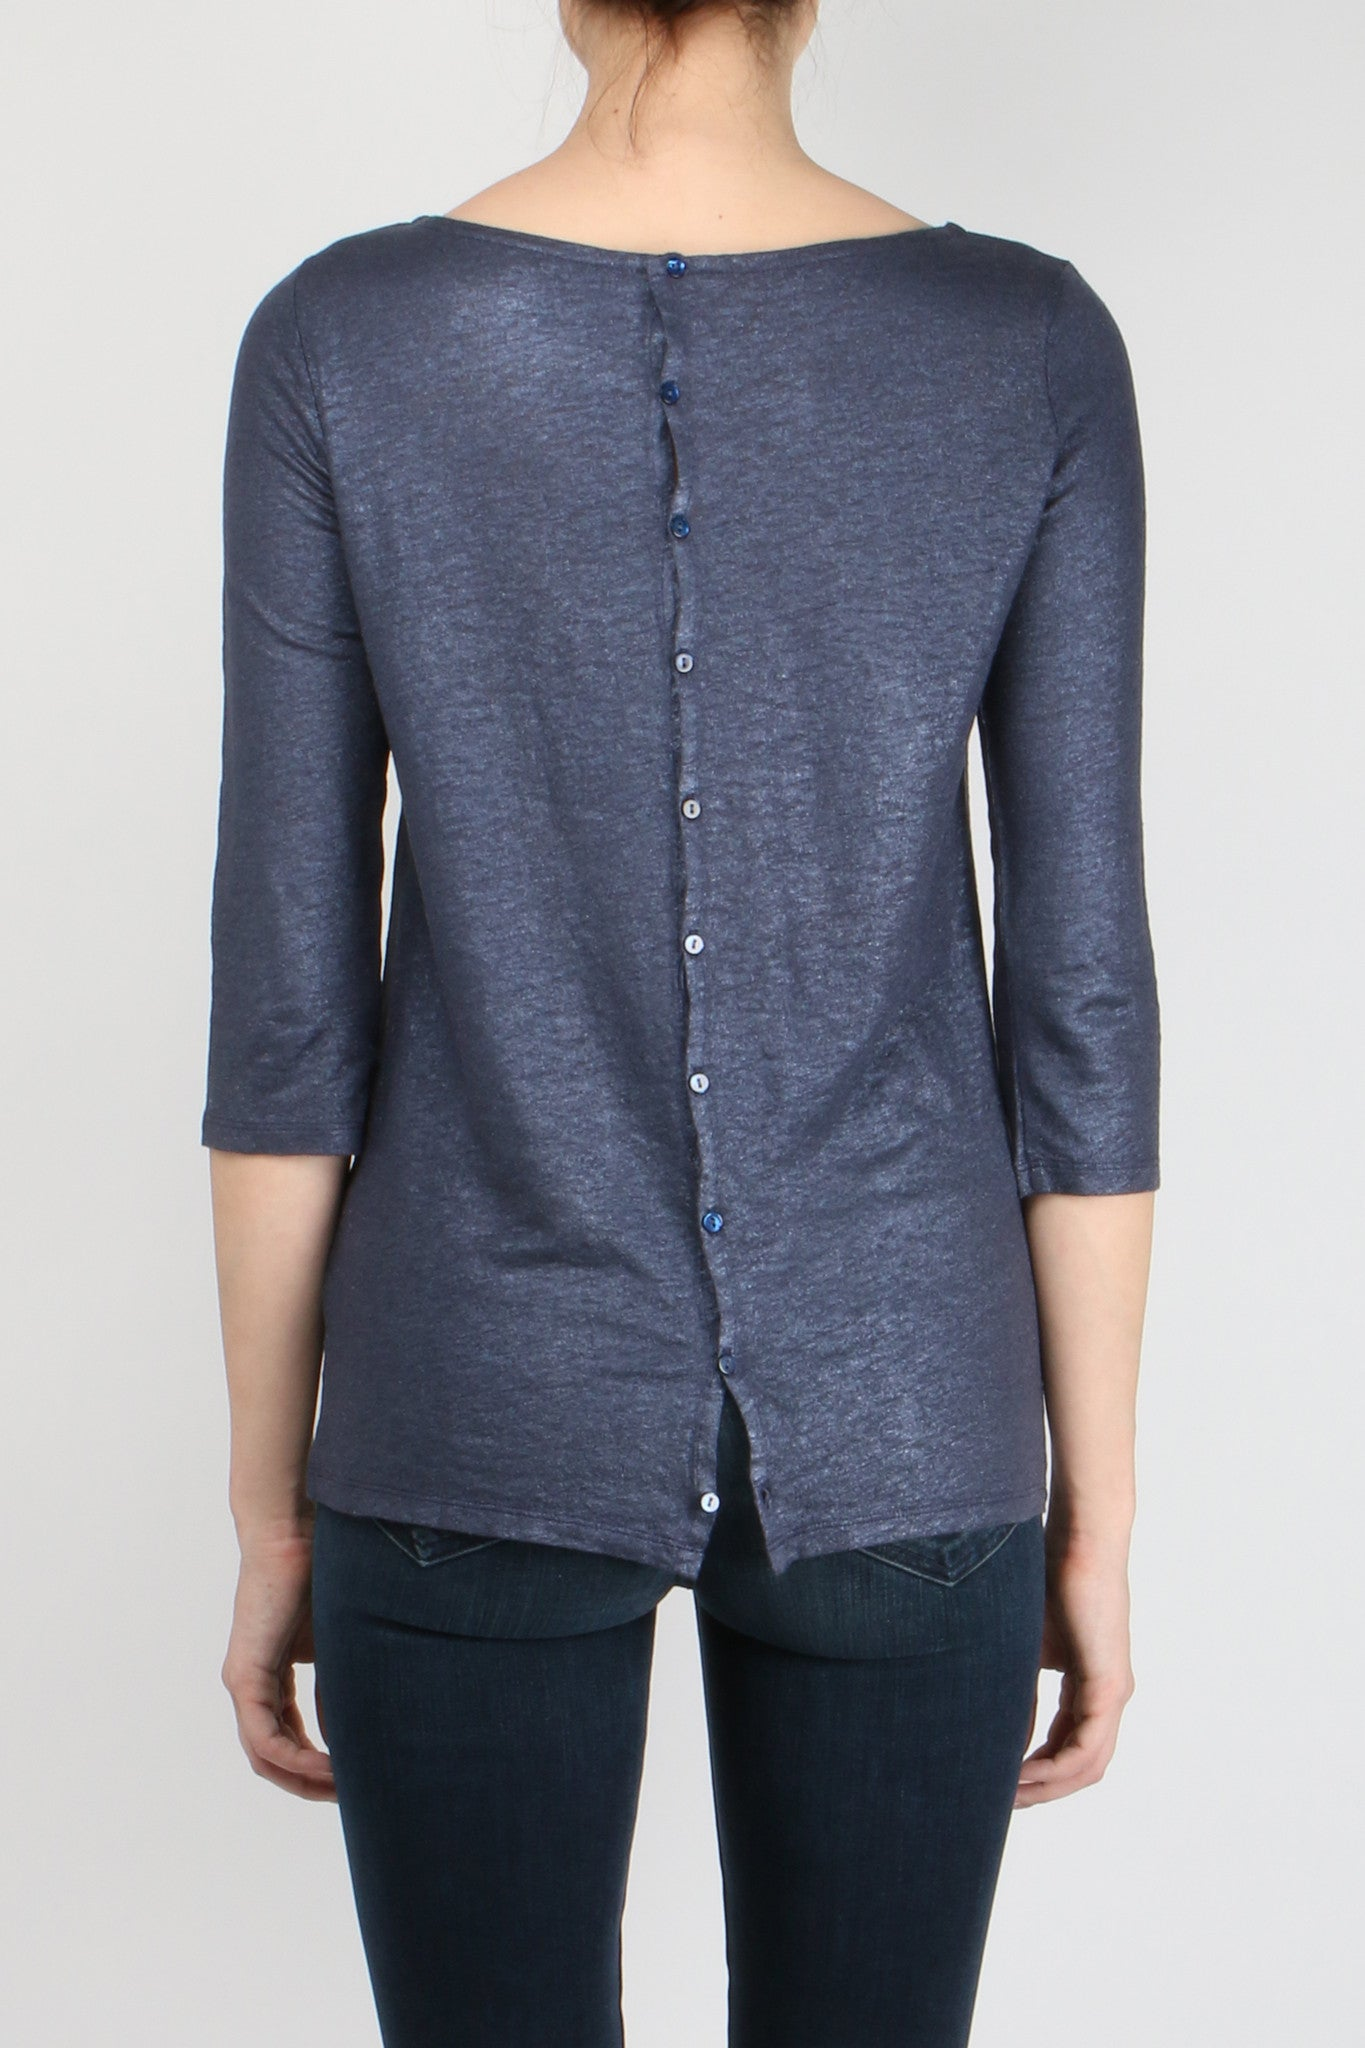 Majestic Filatures Boat Neck Button Back